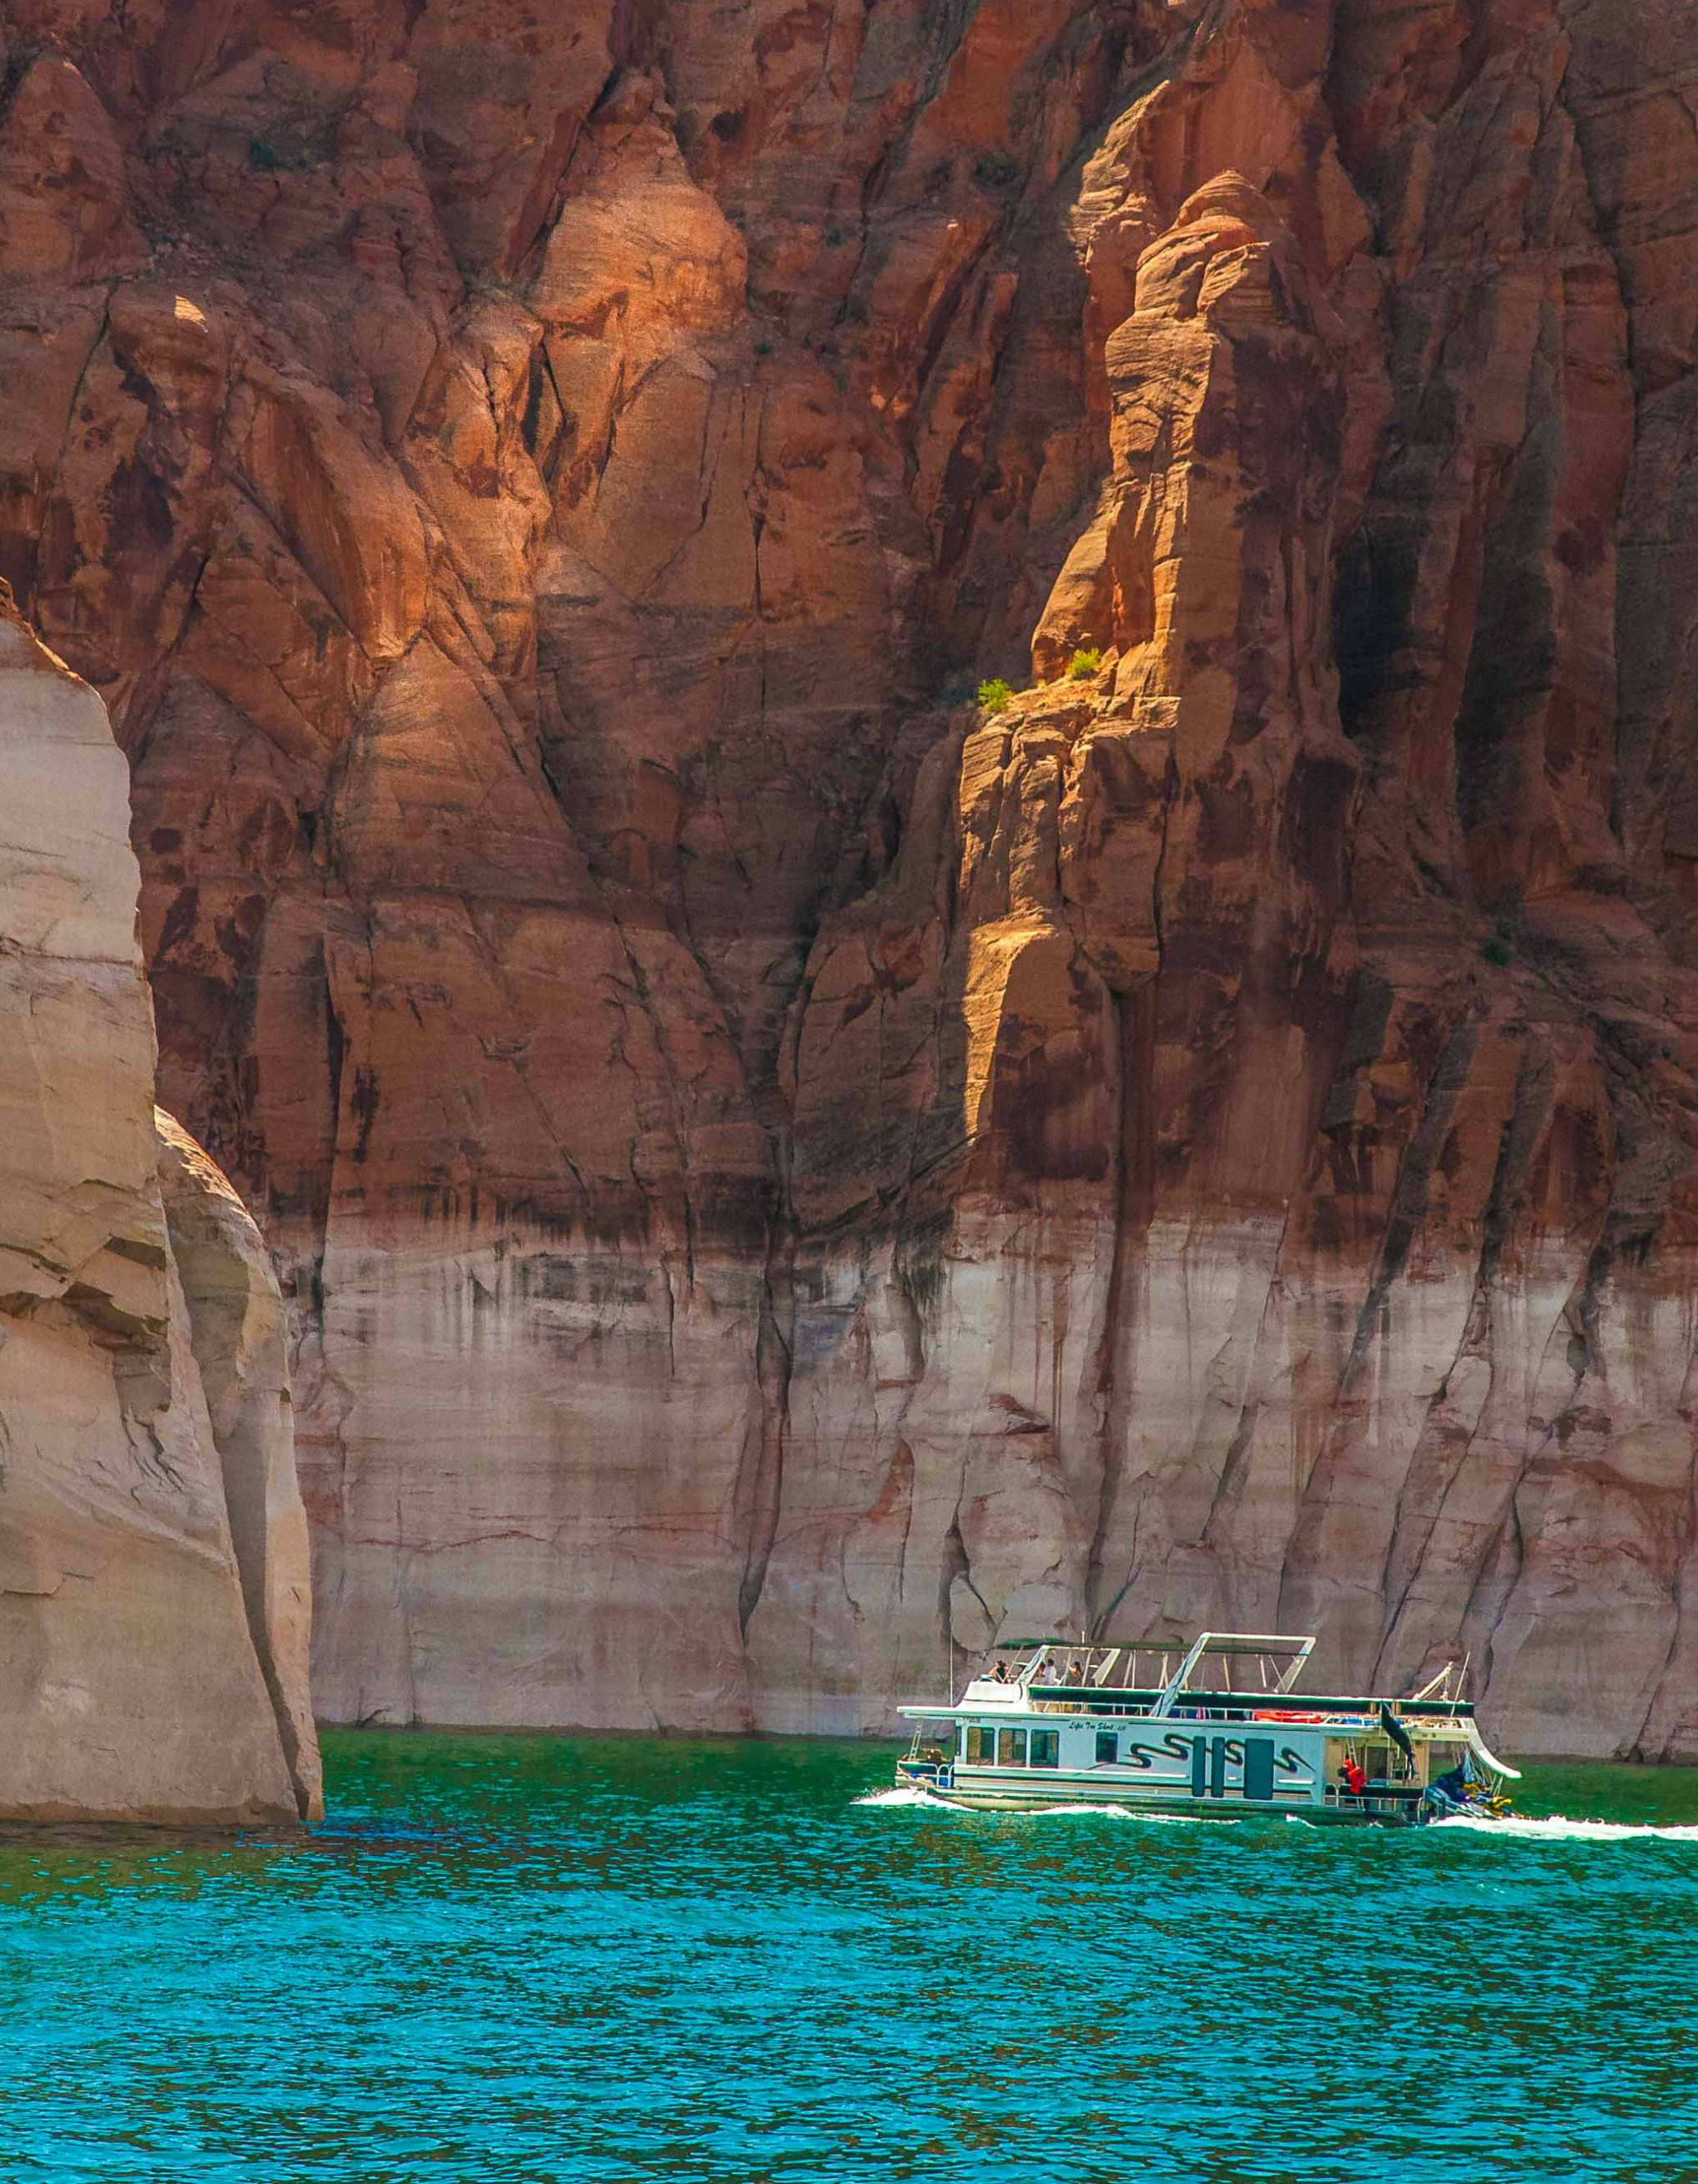 Personals in lake powell az